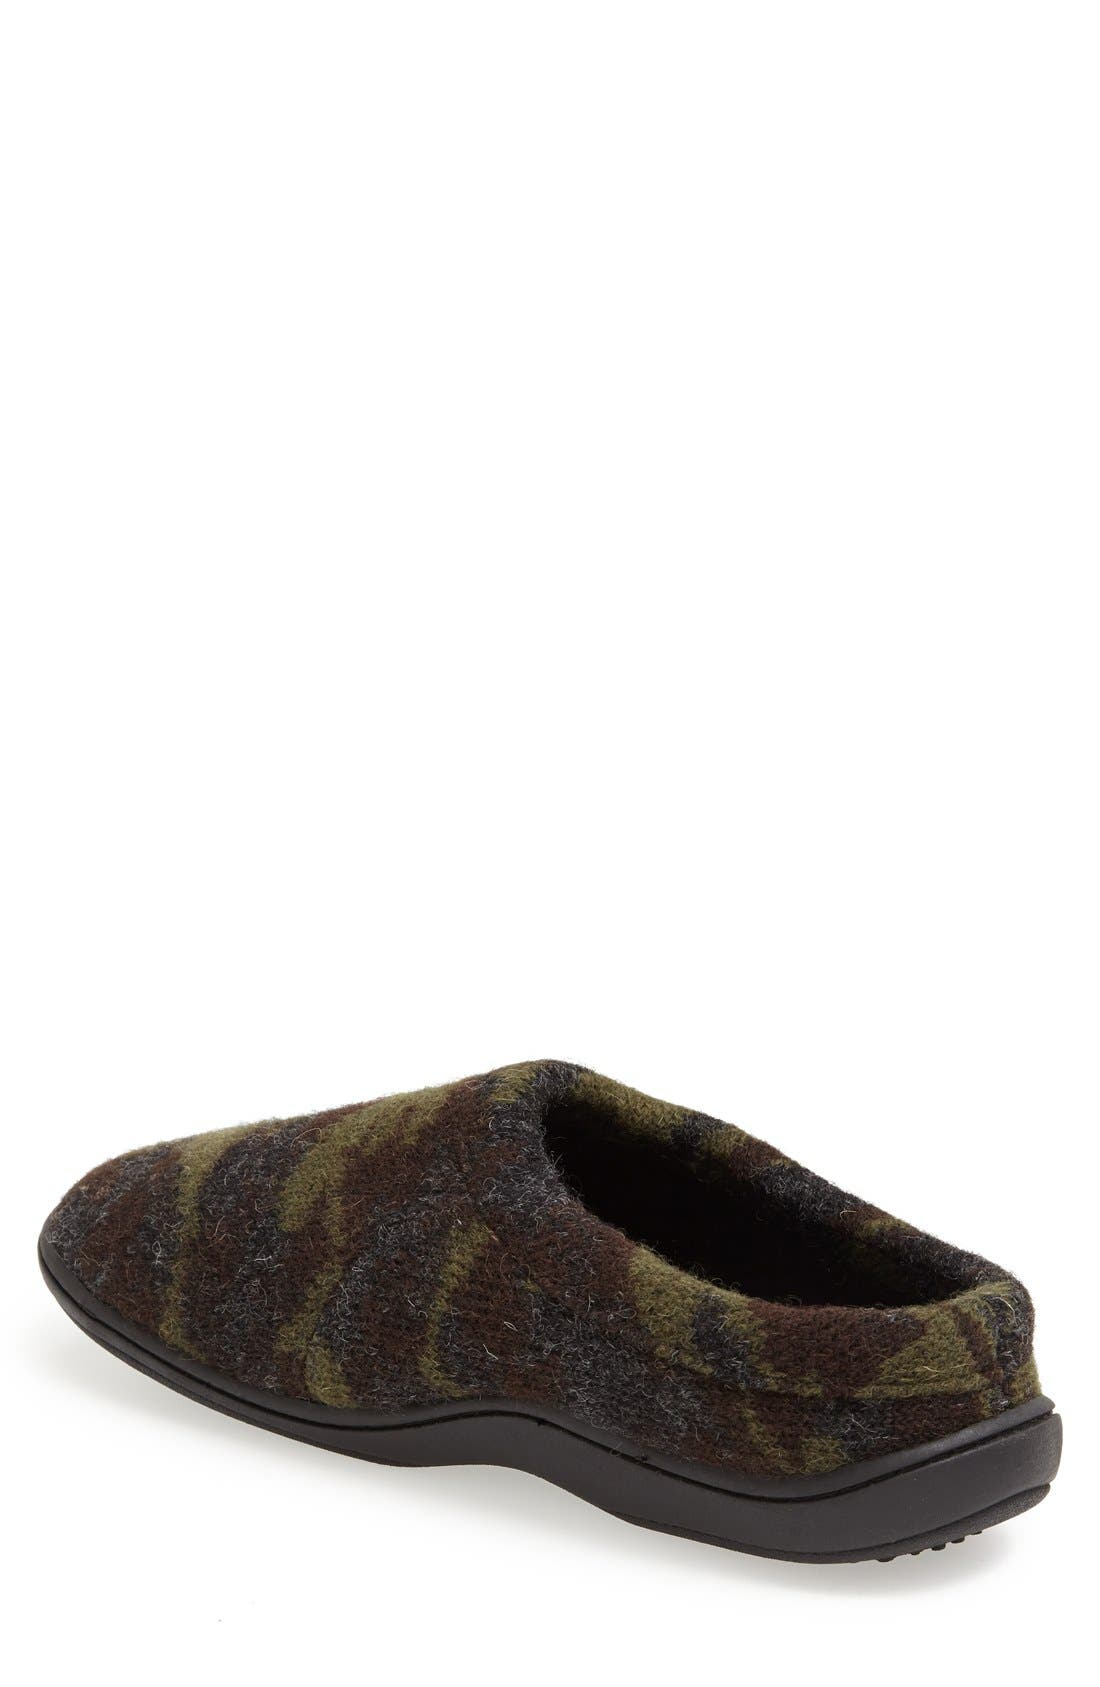 'Digby' Slipper,                             Alternate thumbnail 35, color,